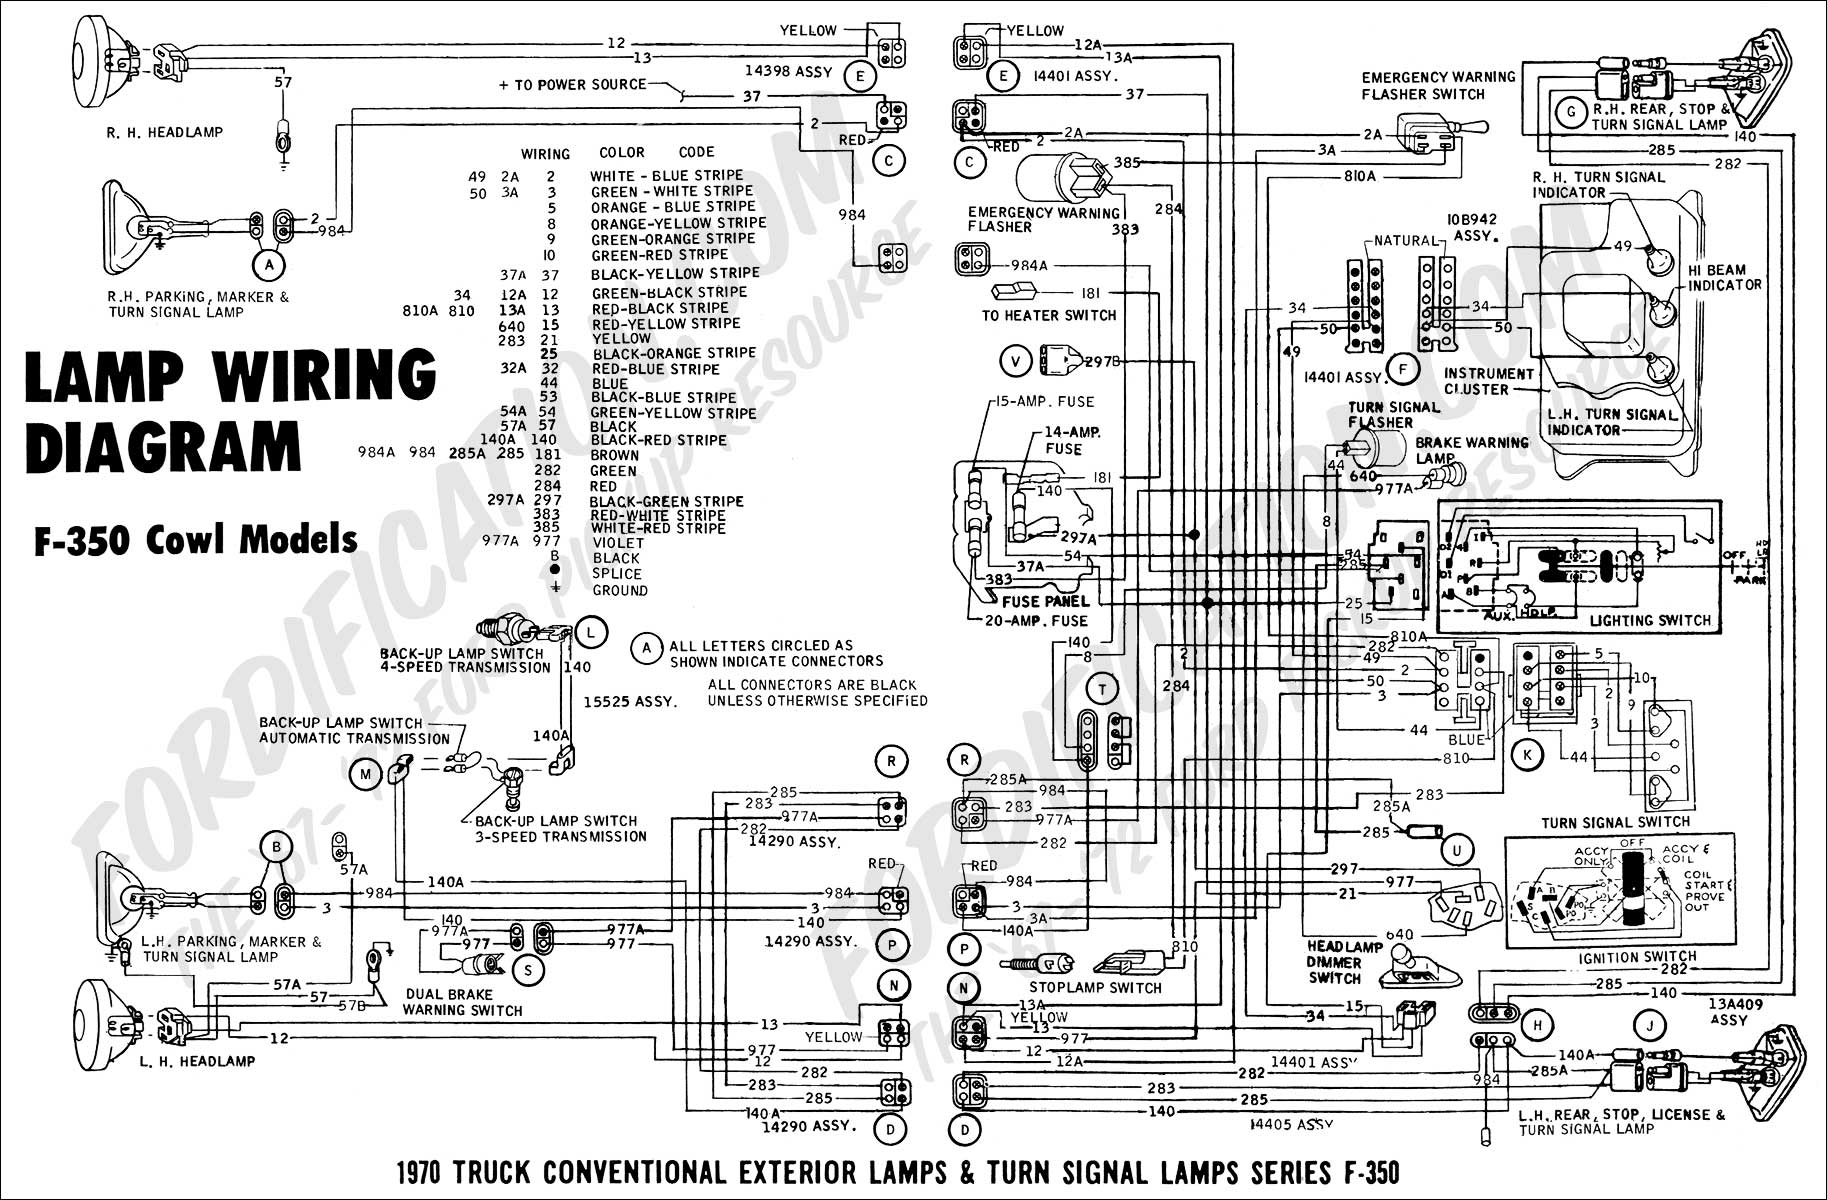 07 ford ranger radio wiring diagram er symbols with its meaning 1999 f250 dome light switch autos post